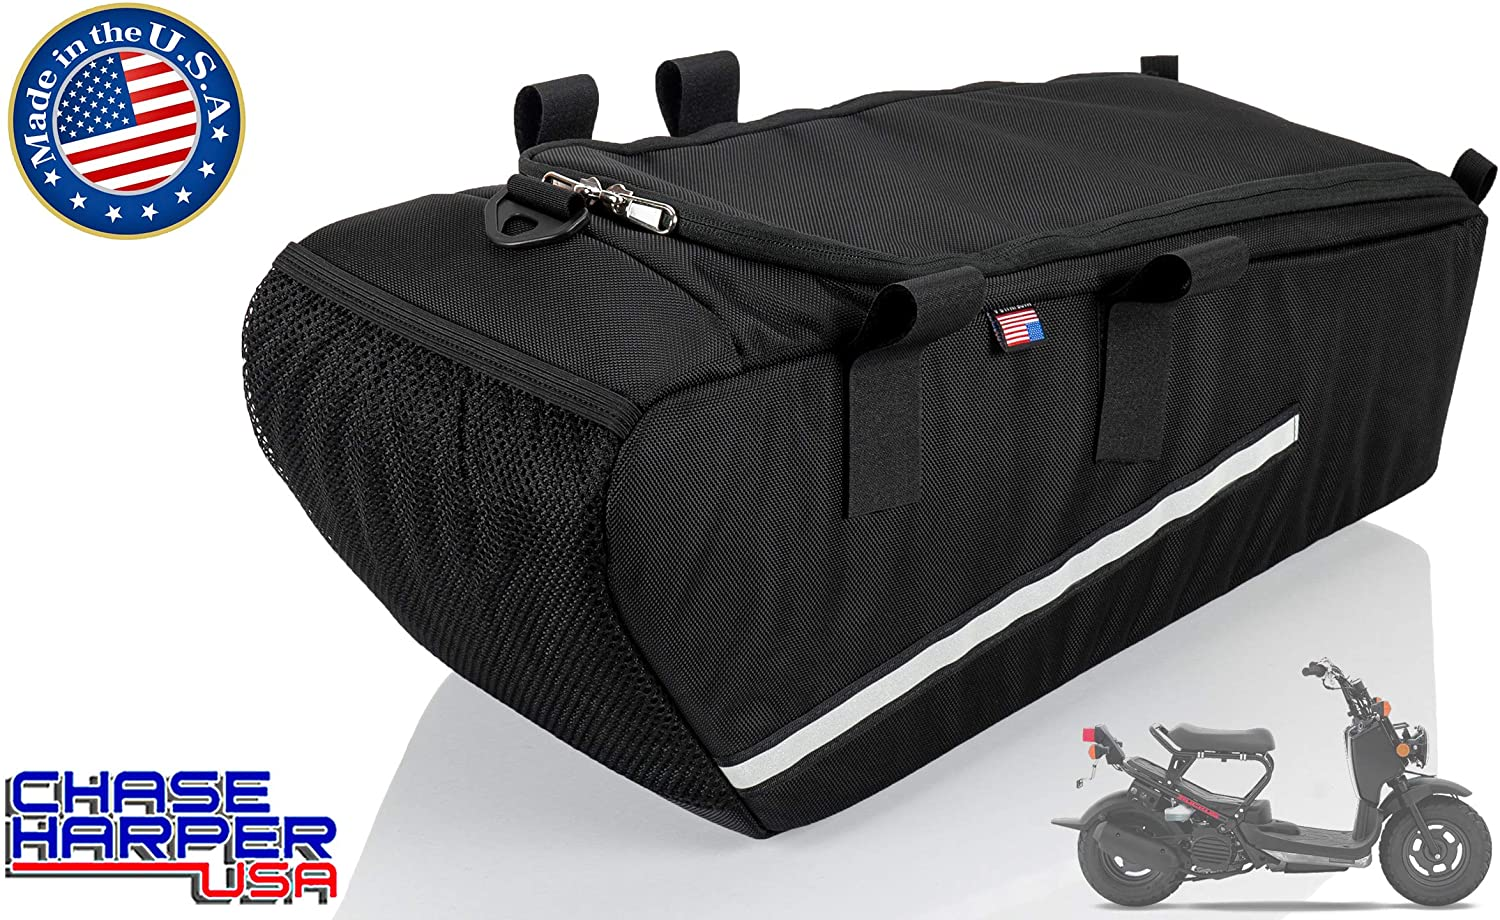 Chase Harper USA 5000 Under The Seat Bag - 2020 Model - Compatible with All Honda Ruckus Model Years - Water and Tear-Resistant Industrial Grade Ballistic Nylon - Black